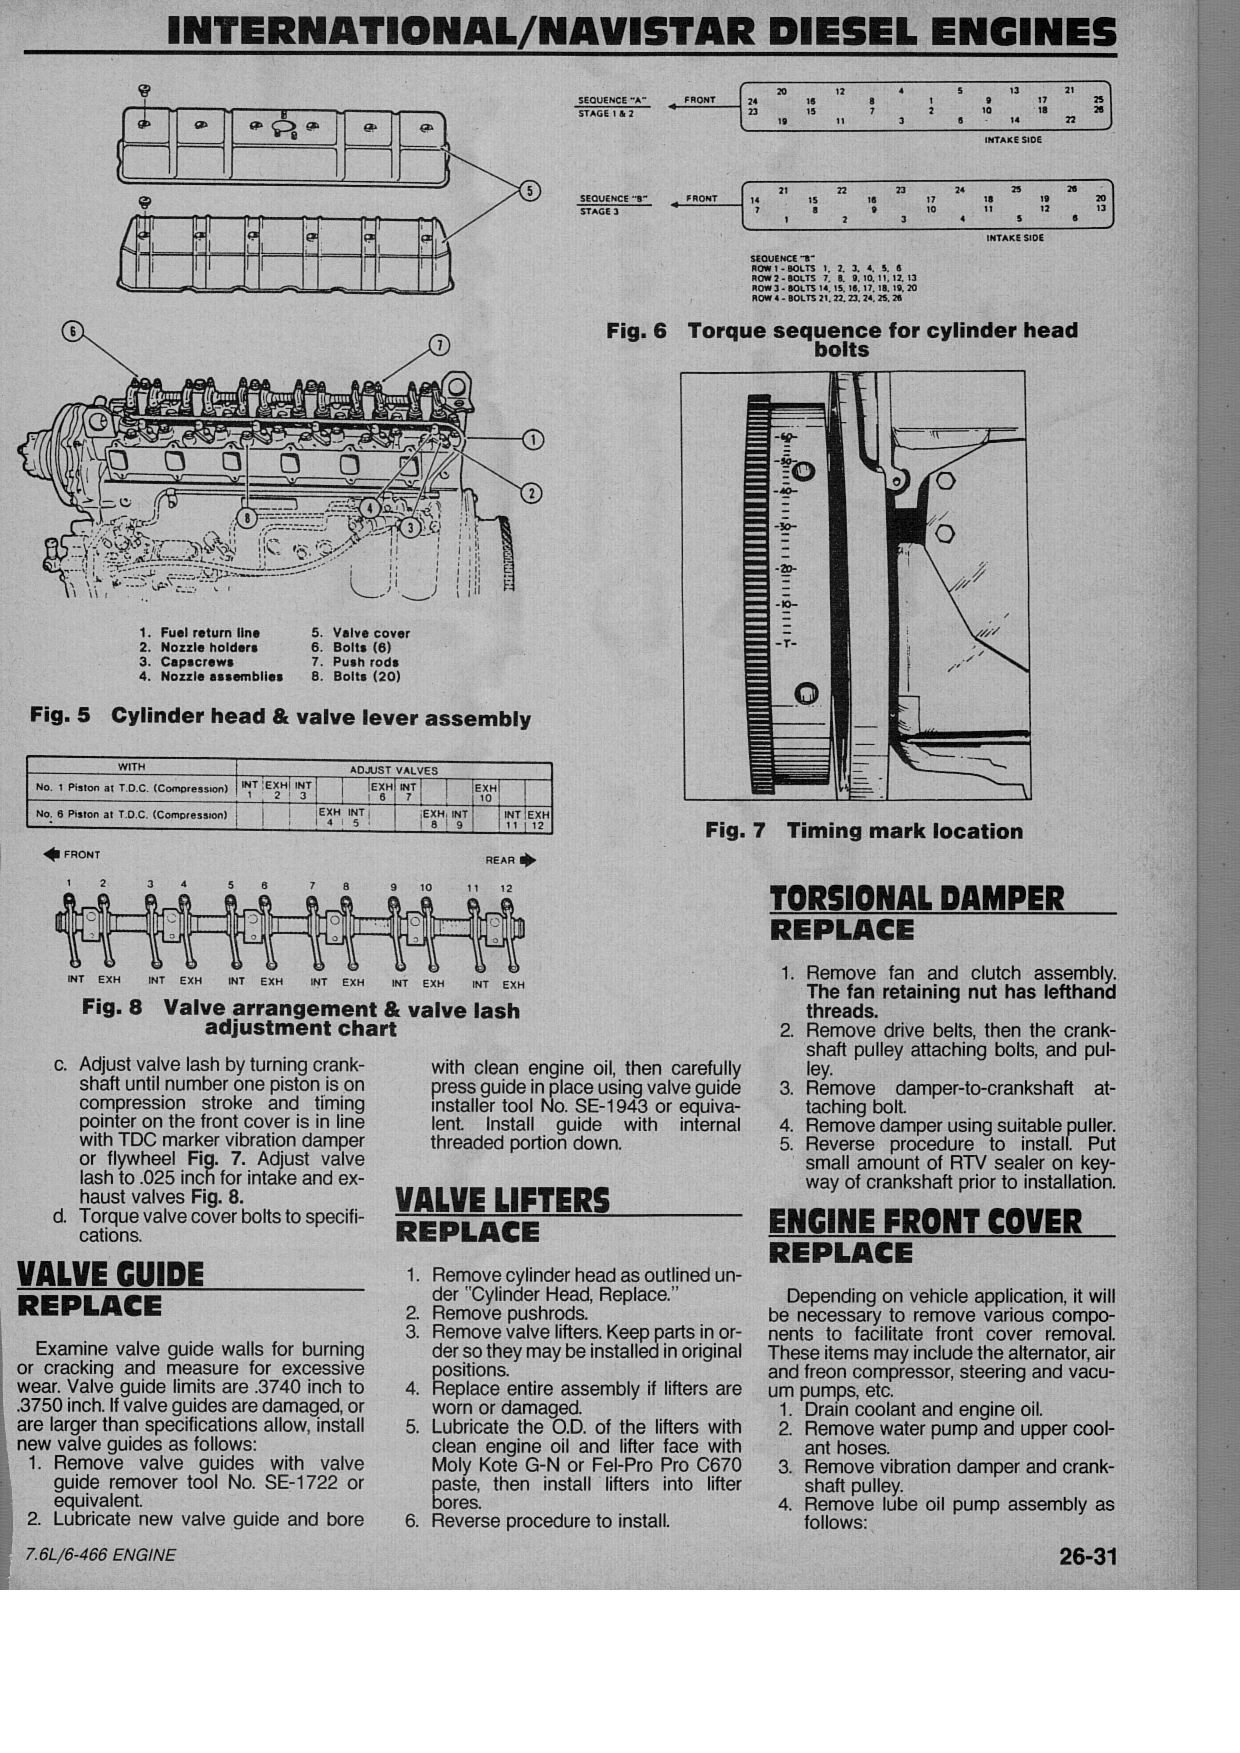 What Is The Torque Specks For 1994 International 76 Engine Nissan Livina Wiring Diagram Dave Graphic